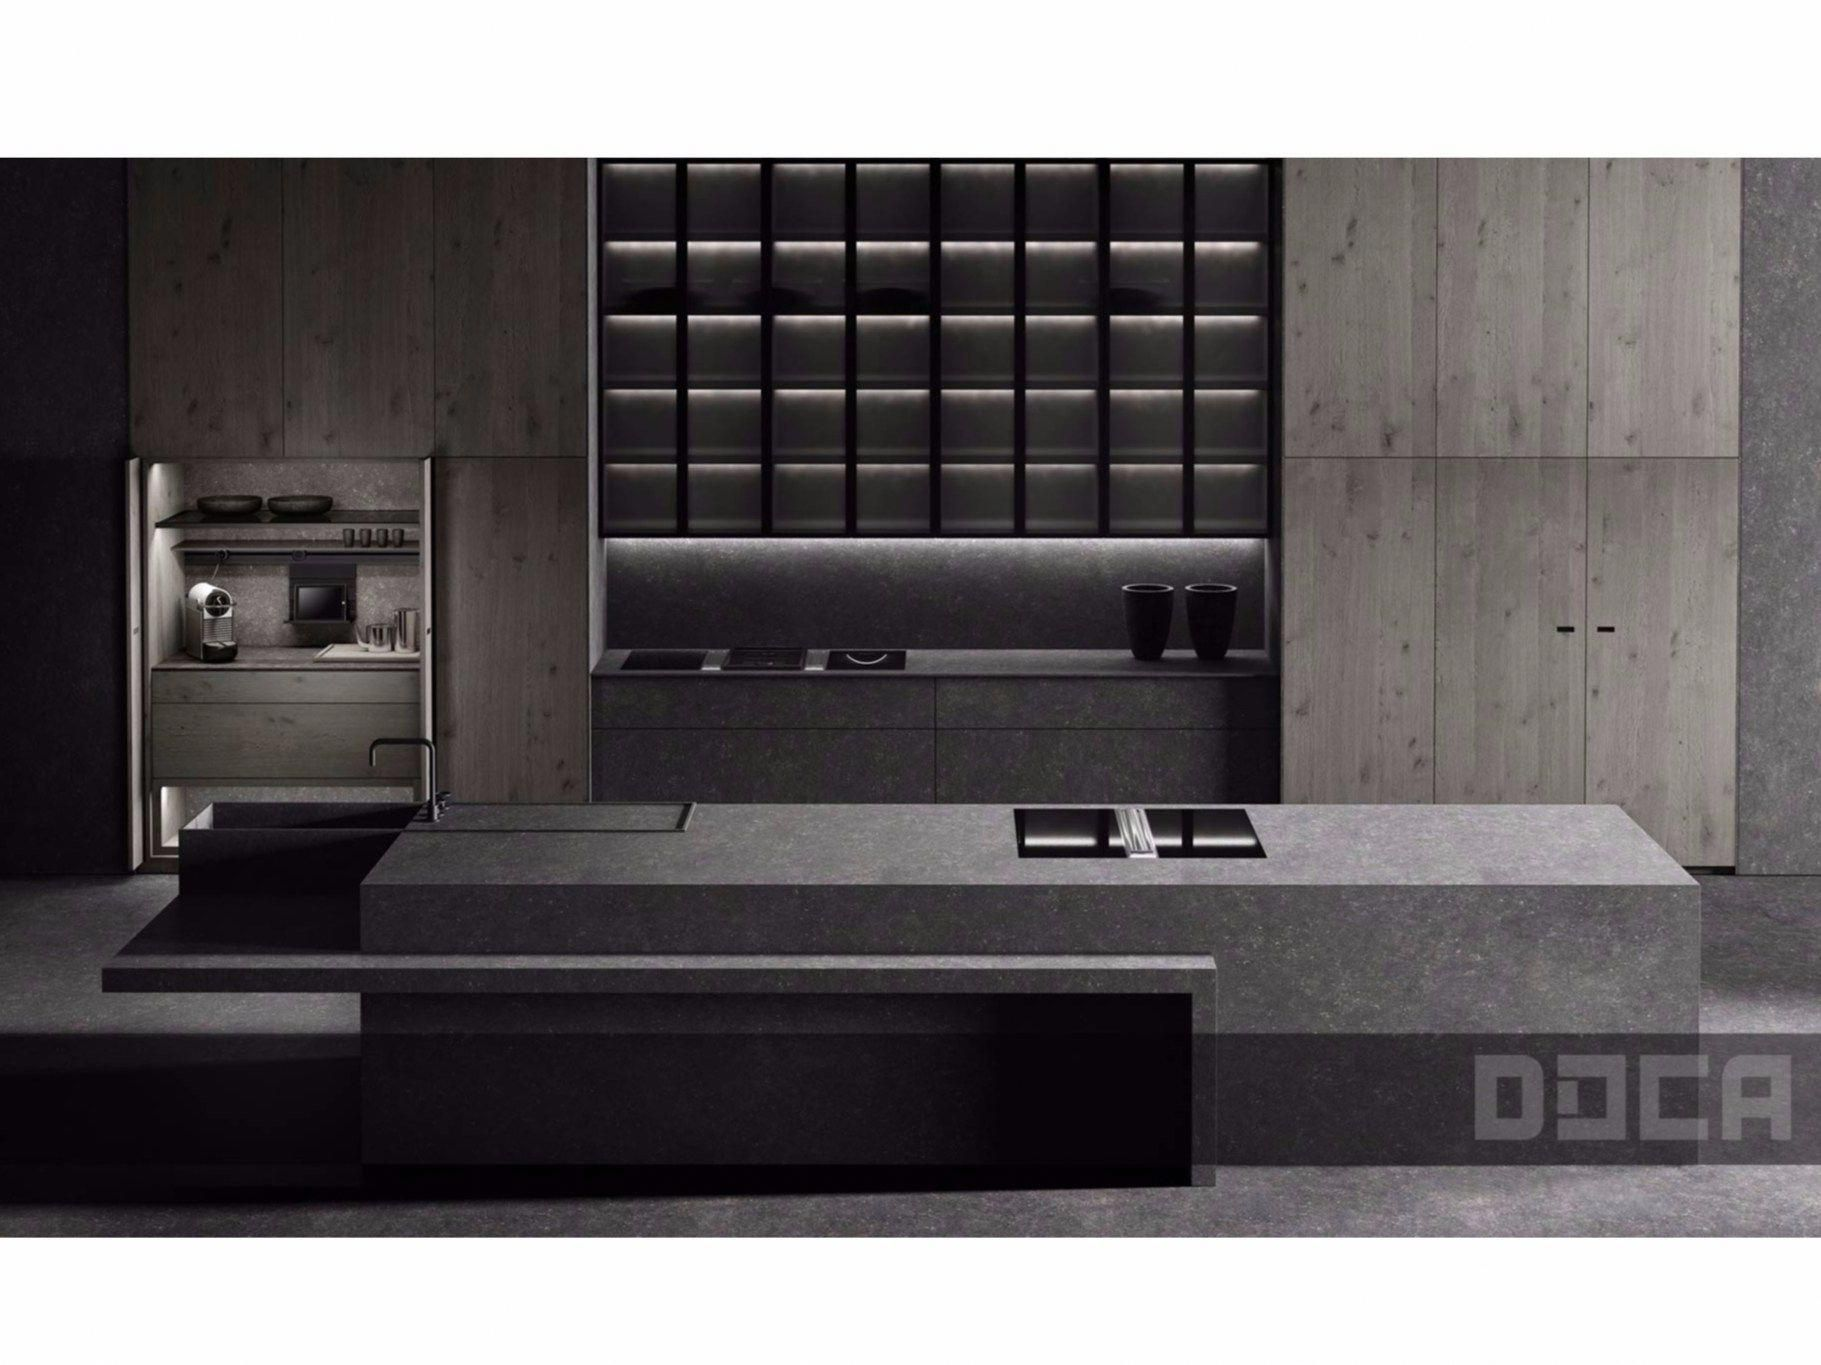 Download The Catalogue And Request Prices Of Luxury Stone Argus By Doca Kitchen With Island Luxurykitch Cuisine Contemporaine Cuisine Moderne Cuisines Design